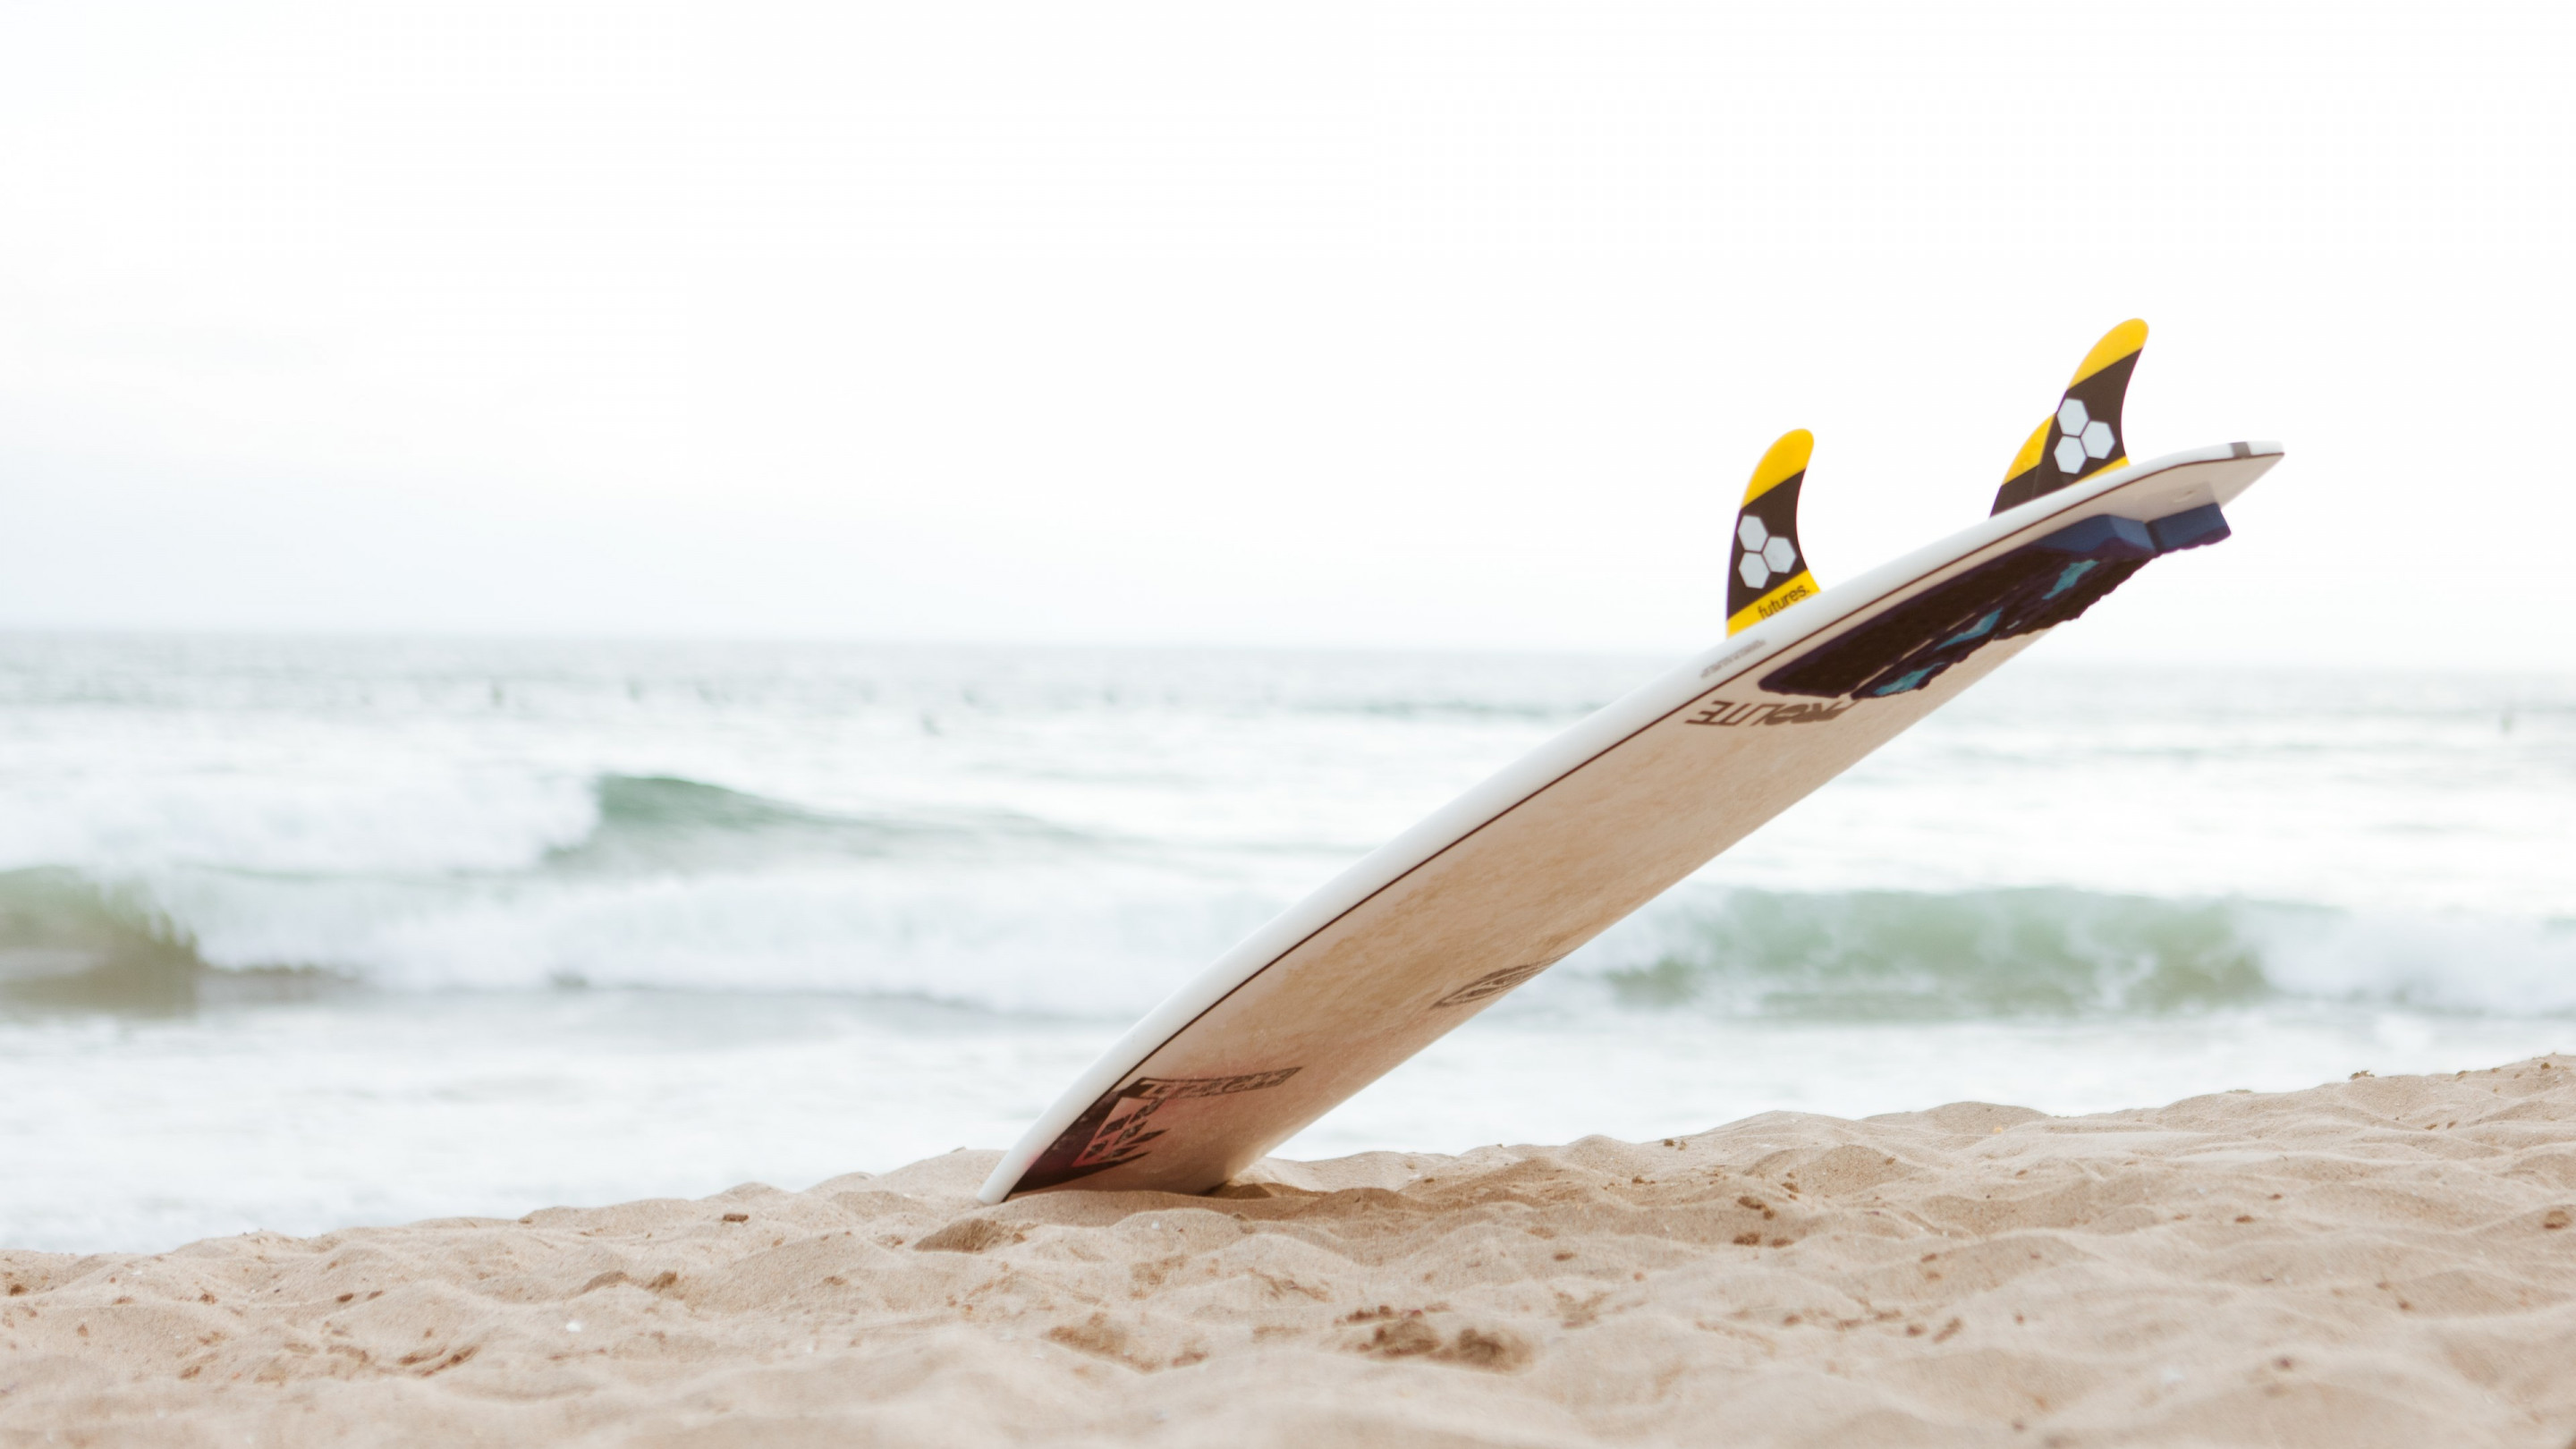 Surf board on the beach wallpaper 2880x1620